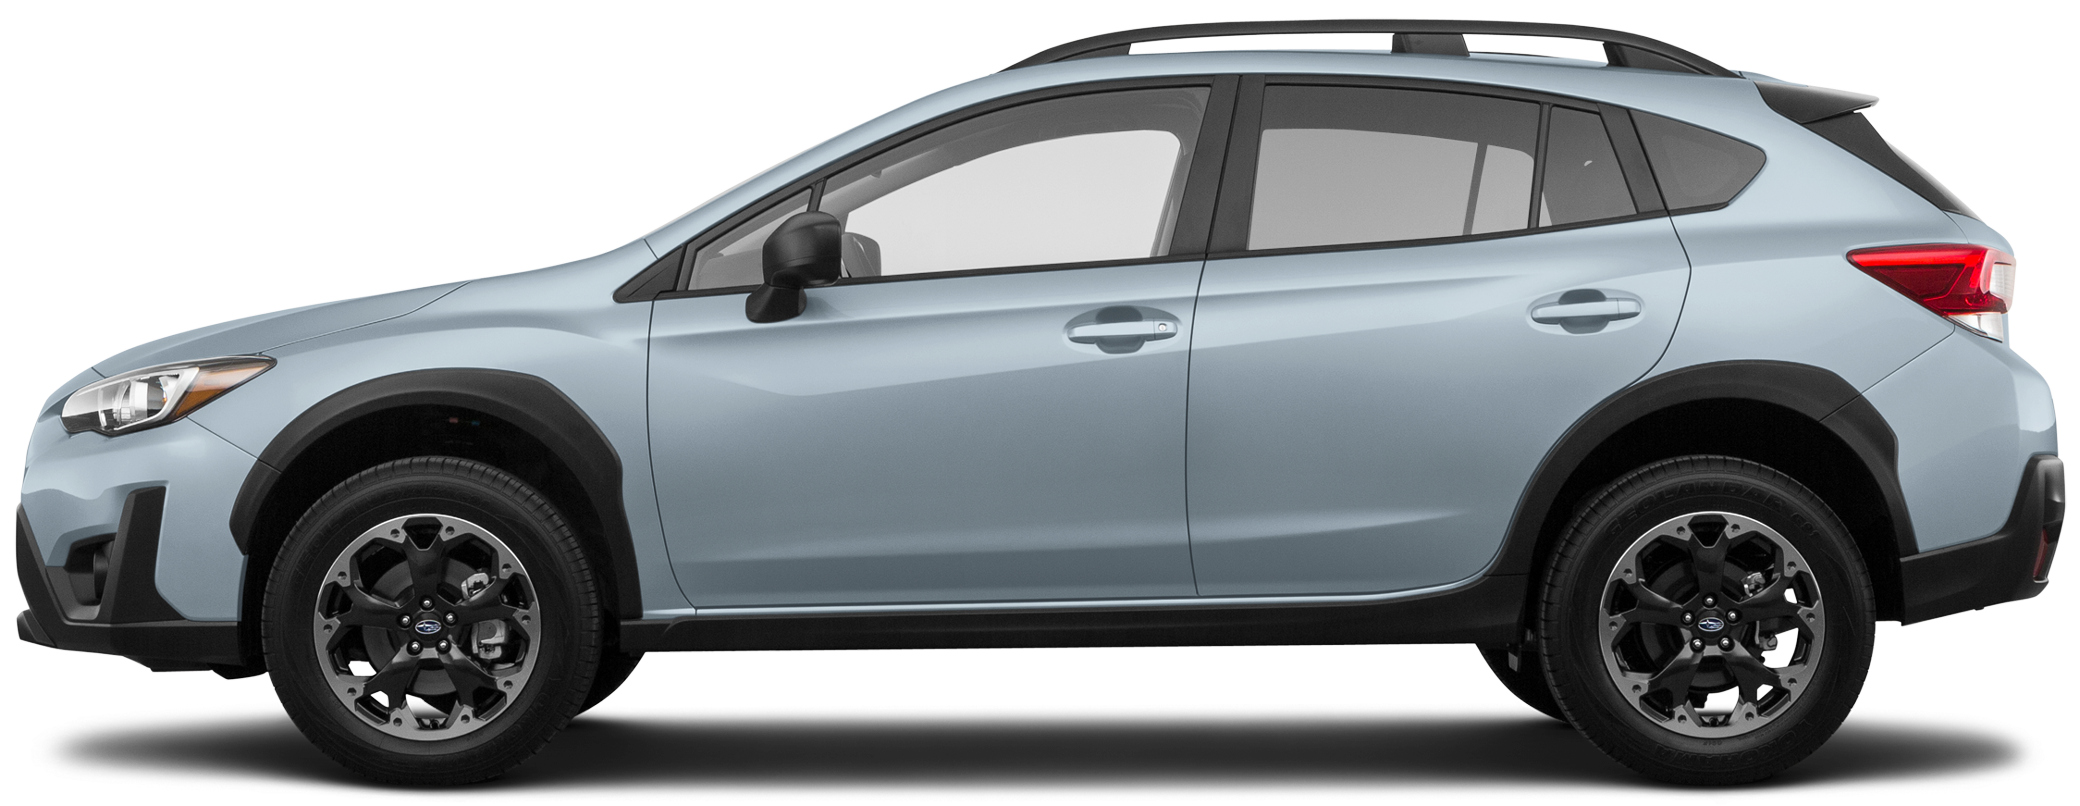 2021 Subaru Crosstrek SUV Base Trim Level